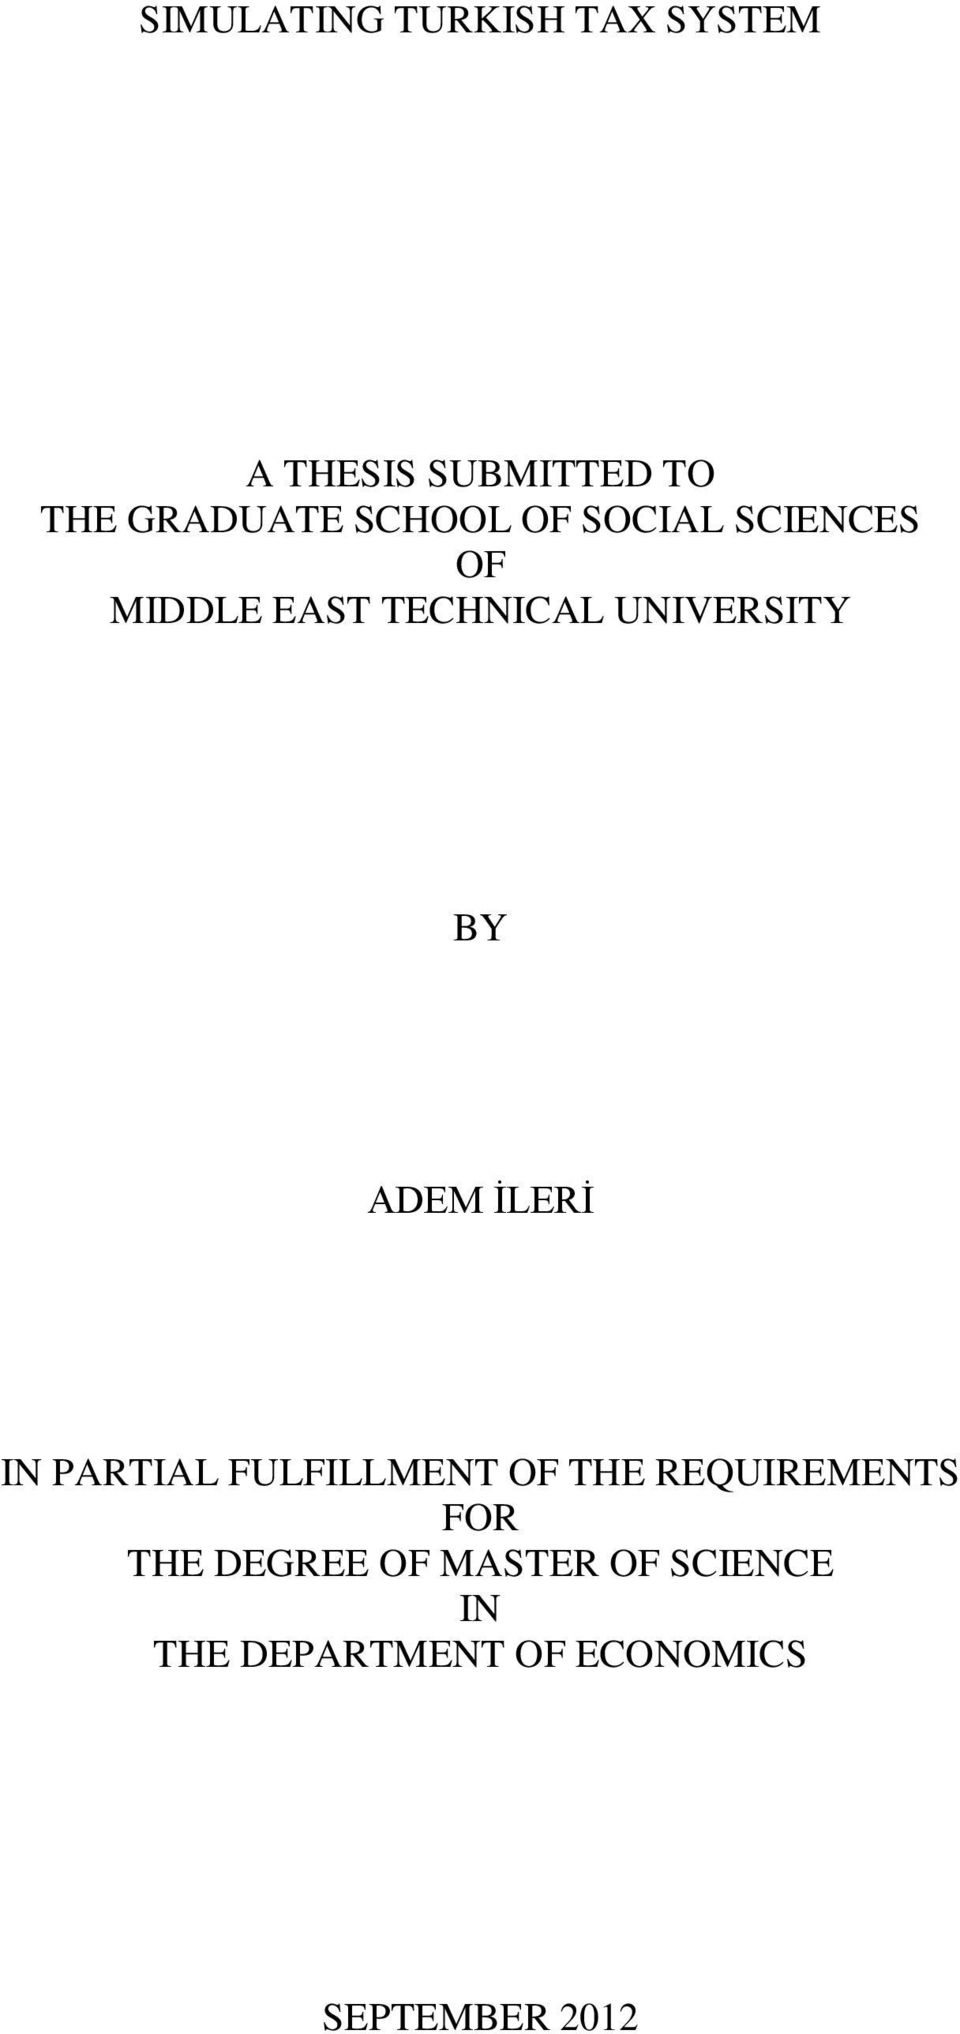 ADEM İLERİ IN PARTIAL FULFILLMENT OF THE REQUIREMENTS FOR THE